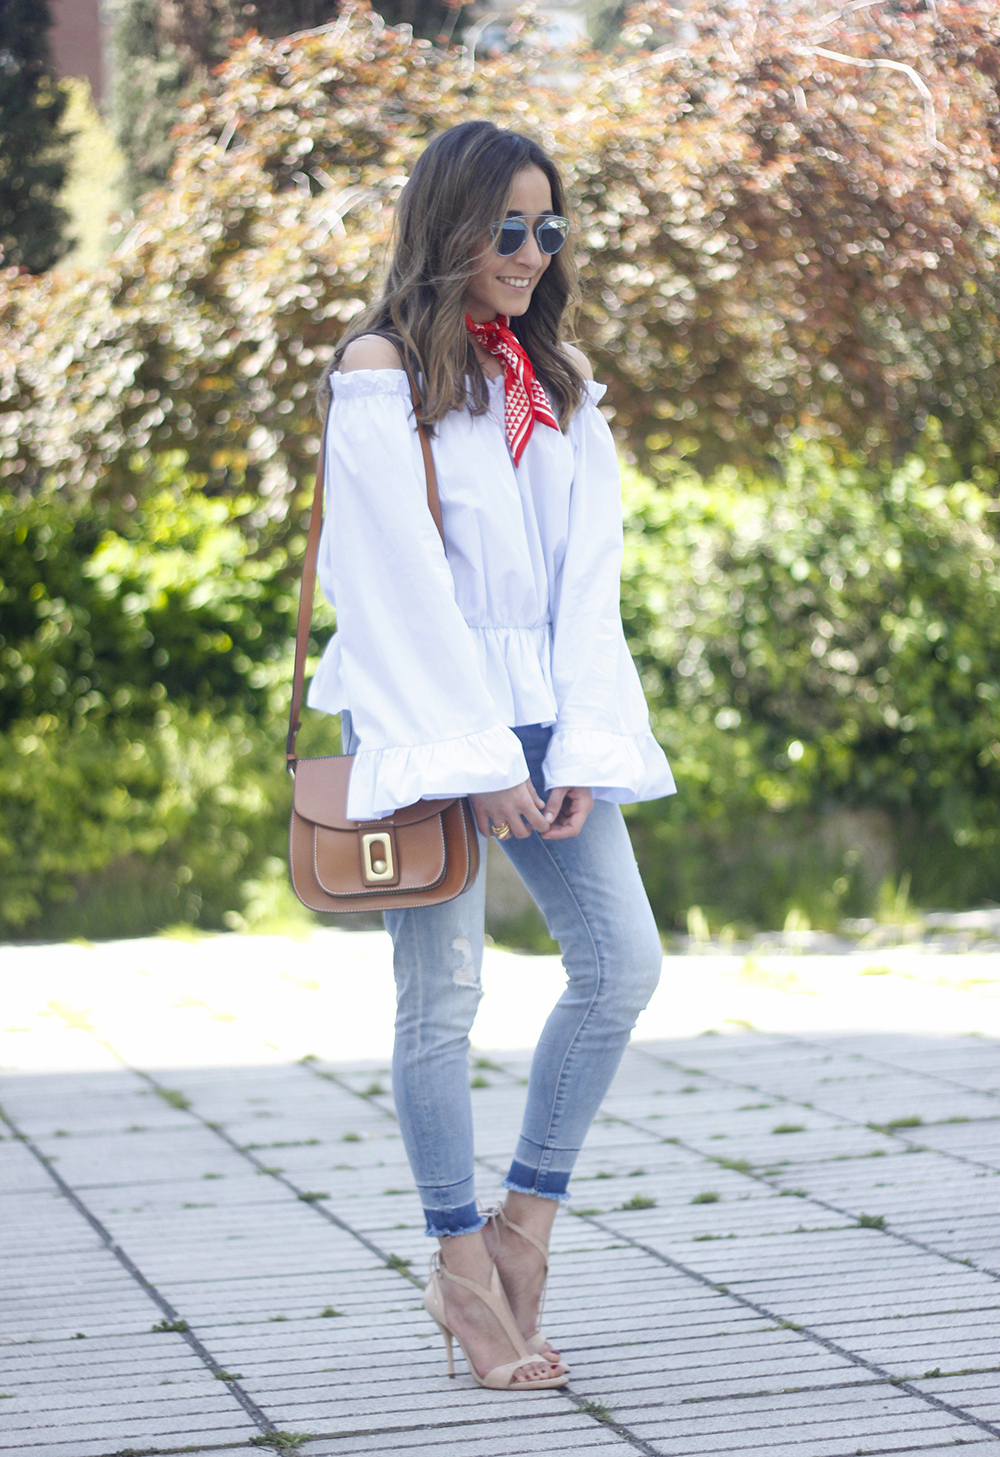 off the shoulders top with bell sleeves red bandana nude heels dior sunglasses spring outfit04